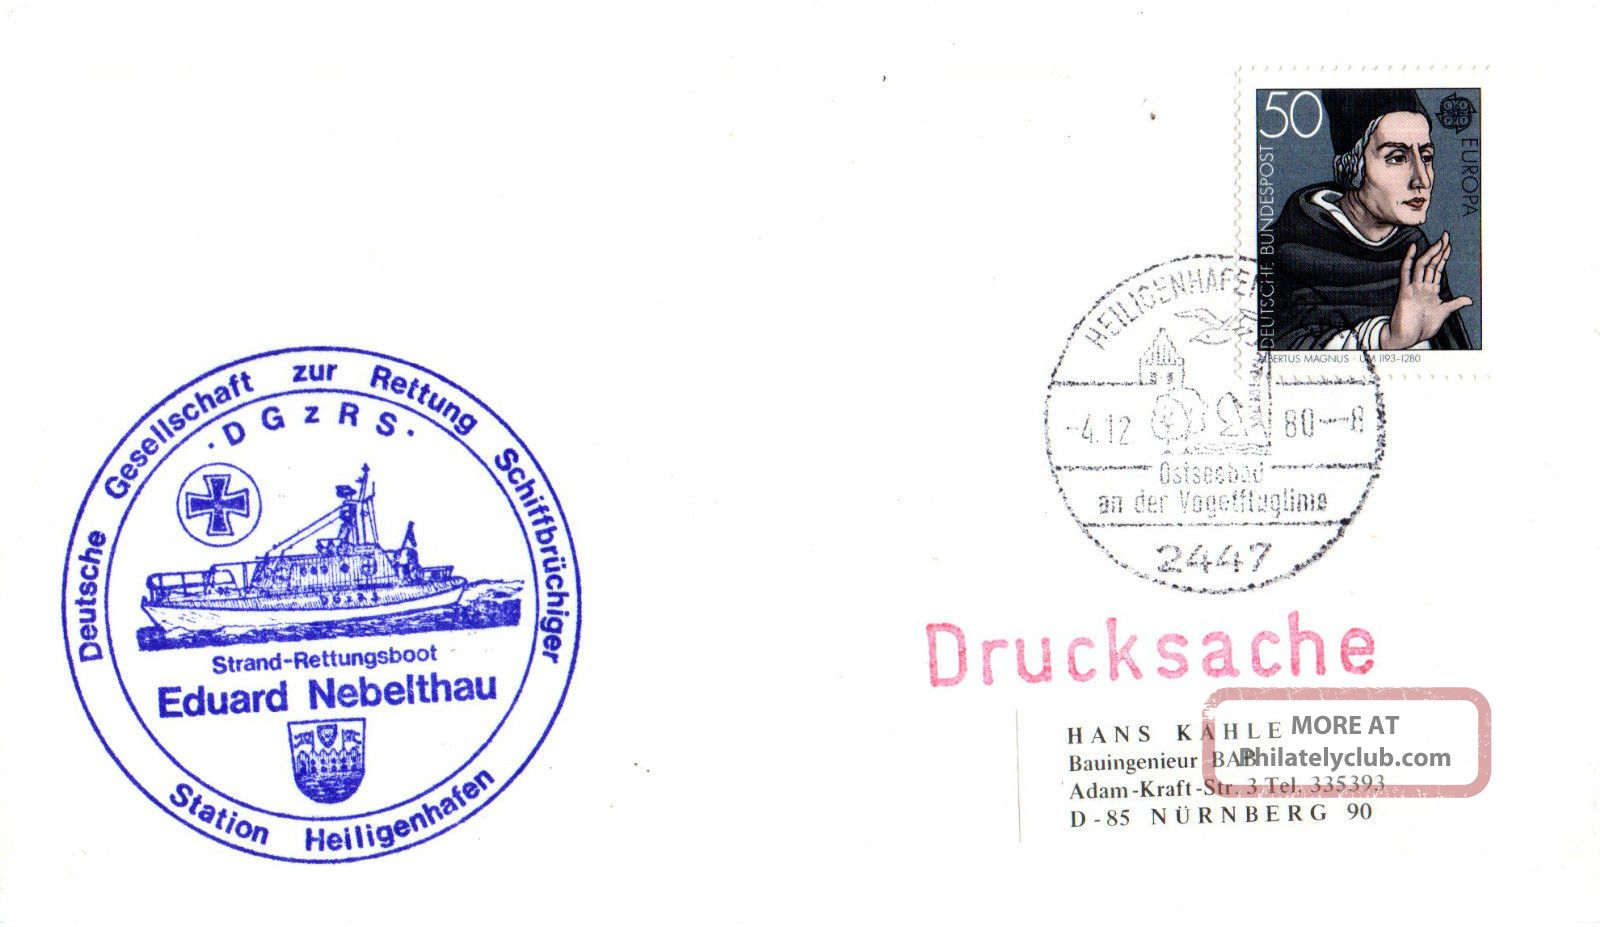 4 December 1980 German Lifeboat Eduard Nebelthau Cached Cover Europe photo